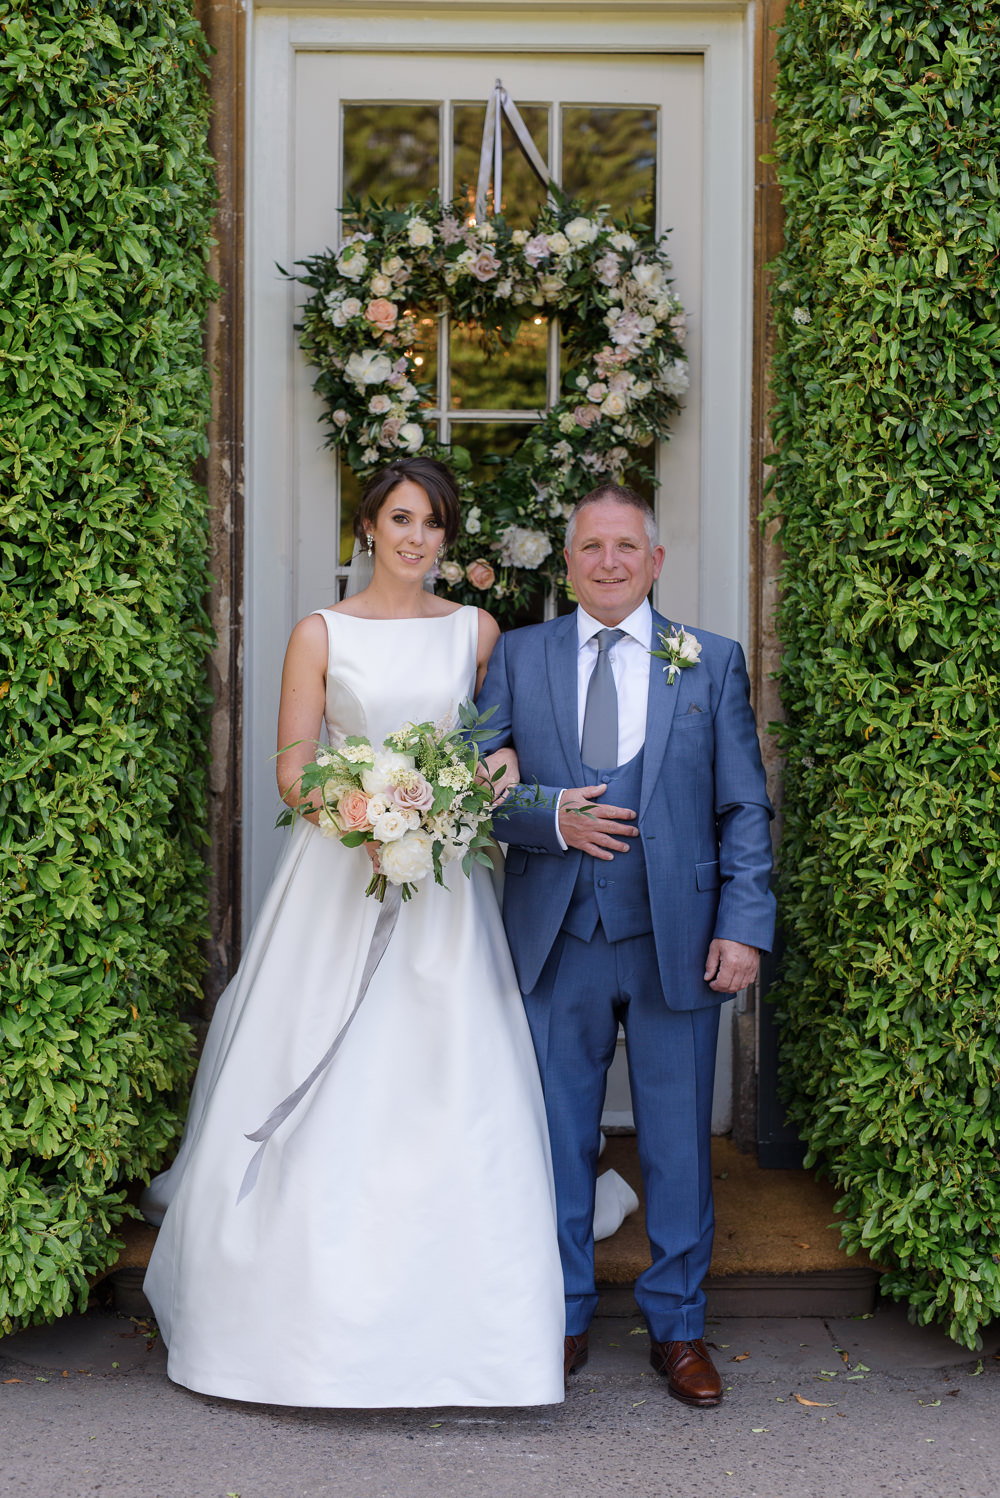 Bride Bridal A Line Dress Straps Sleeveless Silk Boat Neck Neck Blue Suit Veil Babington House Wedding Ria Mishaal Photography